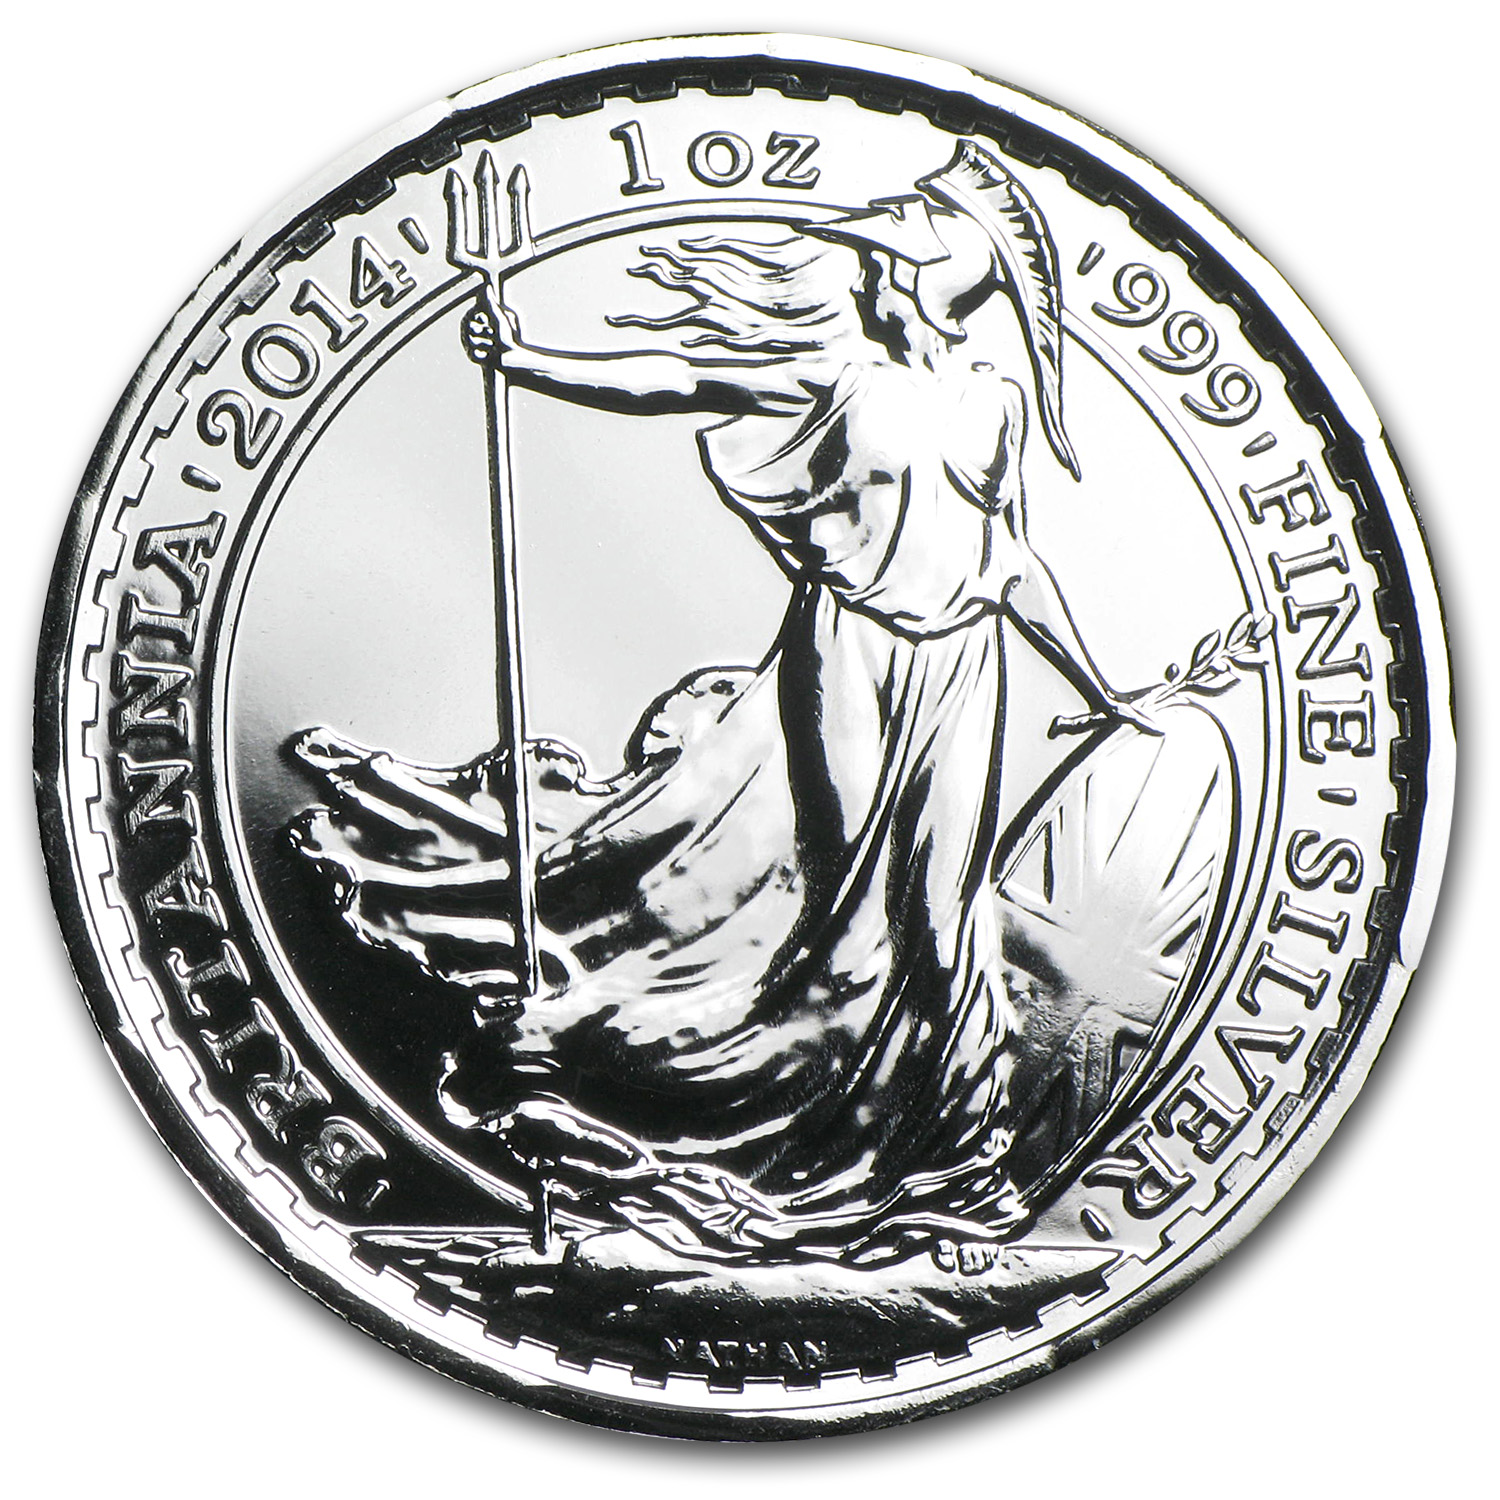 2014 1 oz Silver Britannias (w/ Year of the Horse Privy Mark)